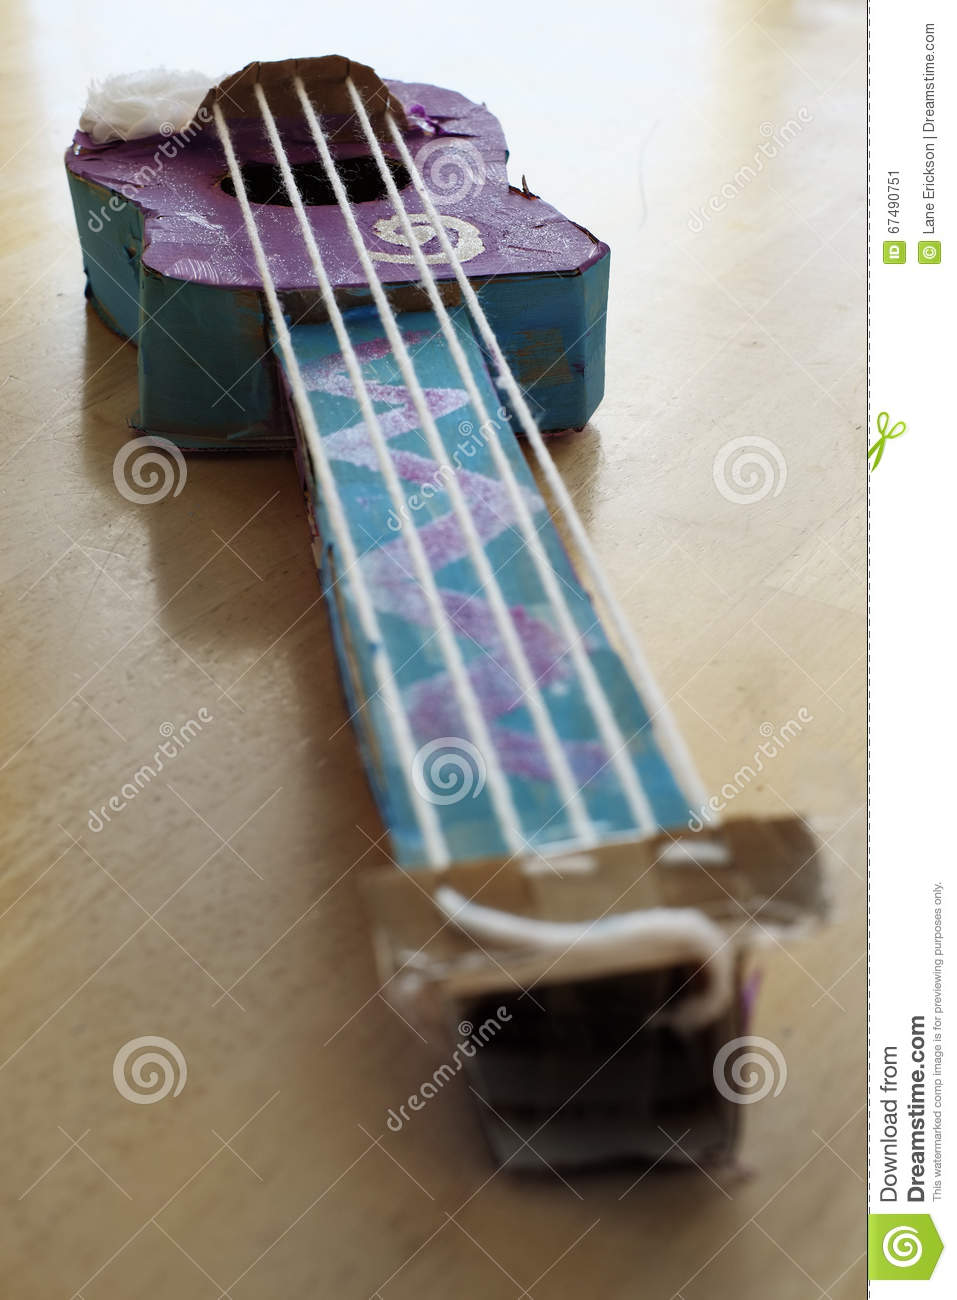 Toy Violins For 3 And Up : Toy violin made of cardboard and strings colors stock